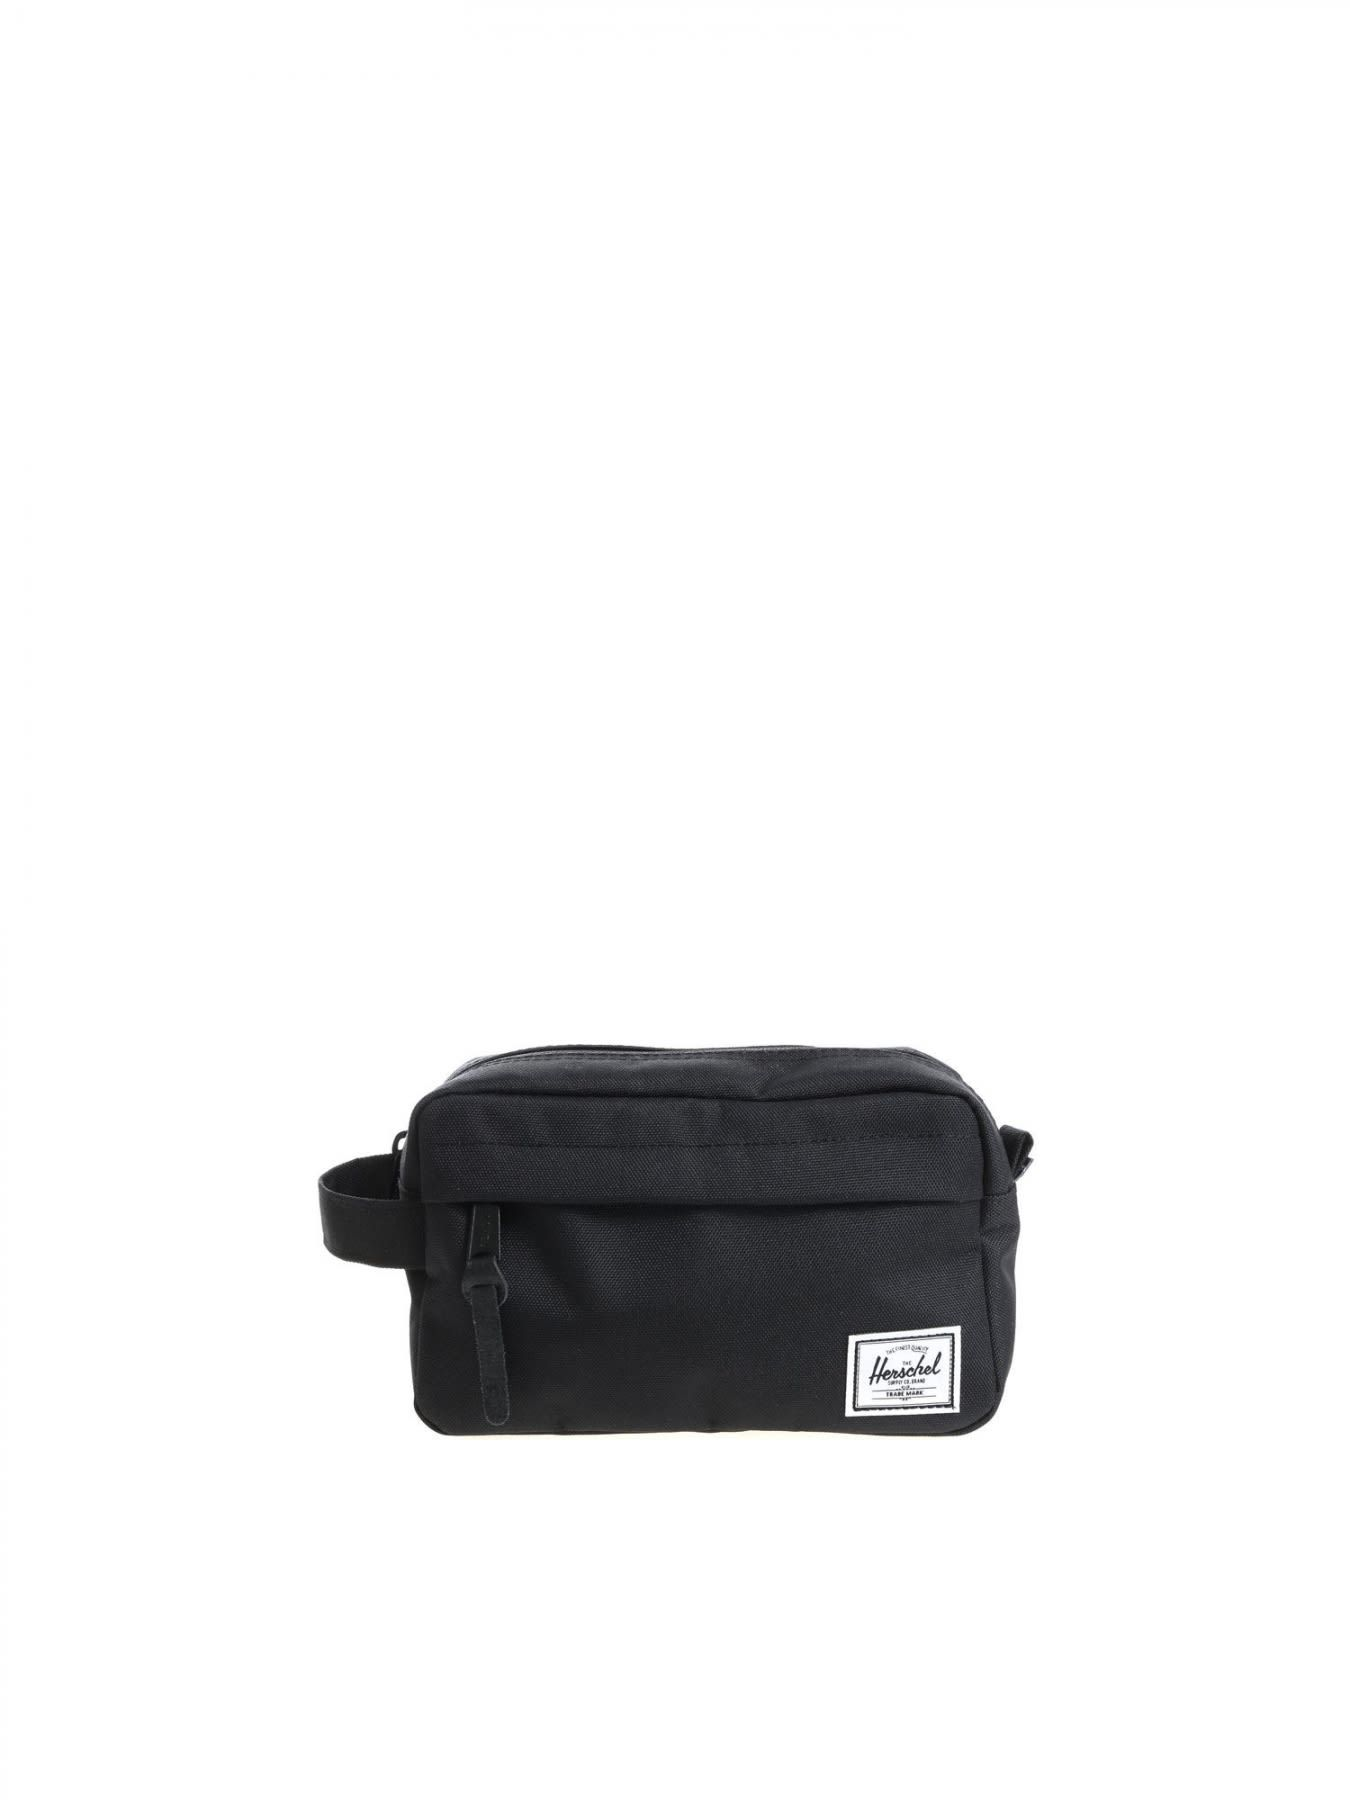 03dc1e599297 HERSCHEL SUPPLY CO. HERSCHEL CHAPTER BEAUTYCASE.  herschelsupplyco.  bags   polyester